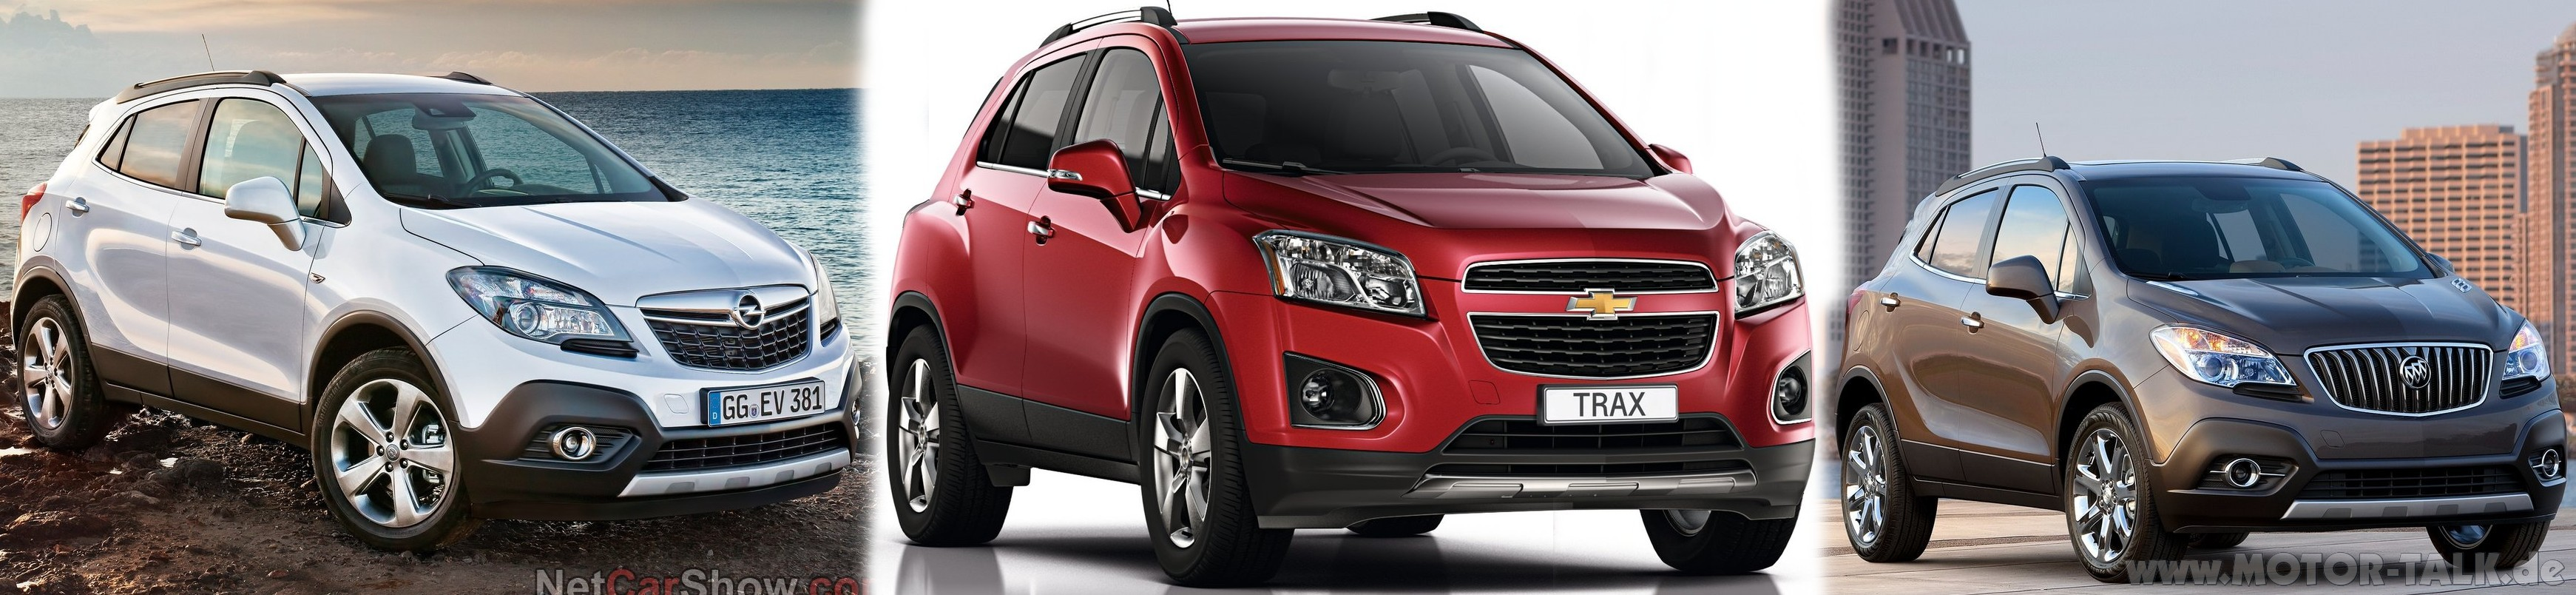 2015 chevy trax vs 2015 buick encore autos post. Black Bedroom Furniture Sets. Home Design Ideas